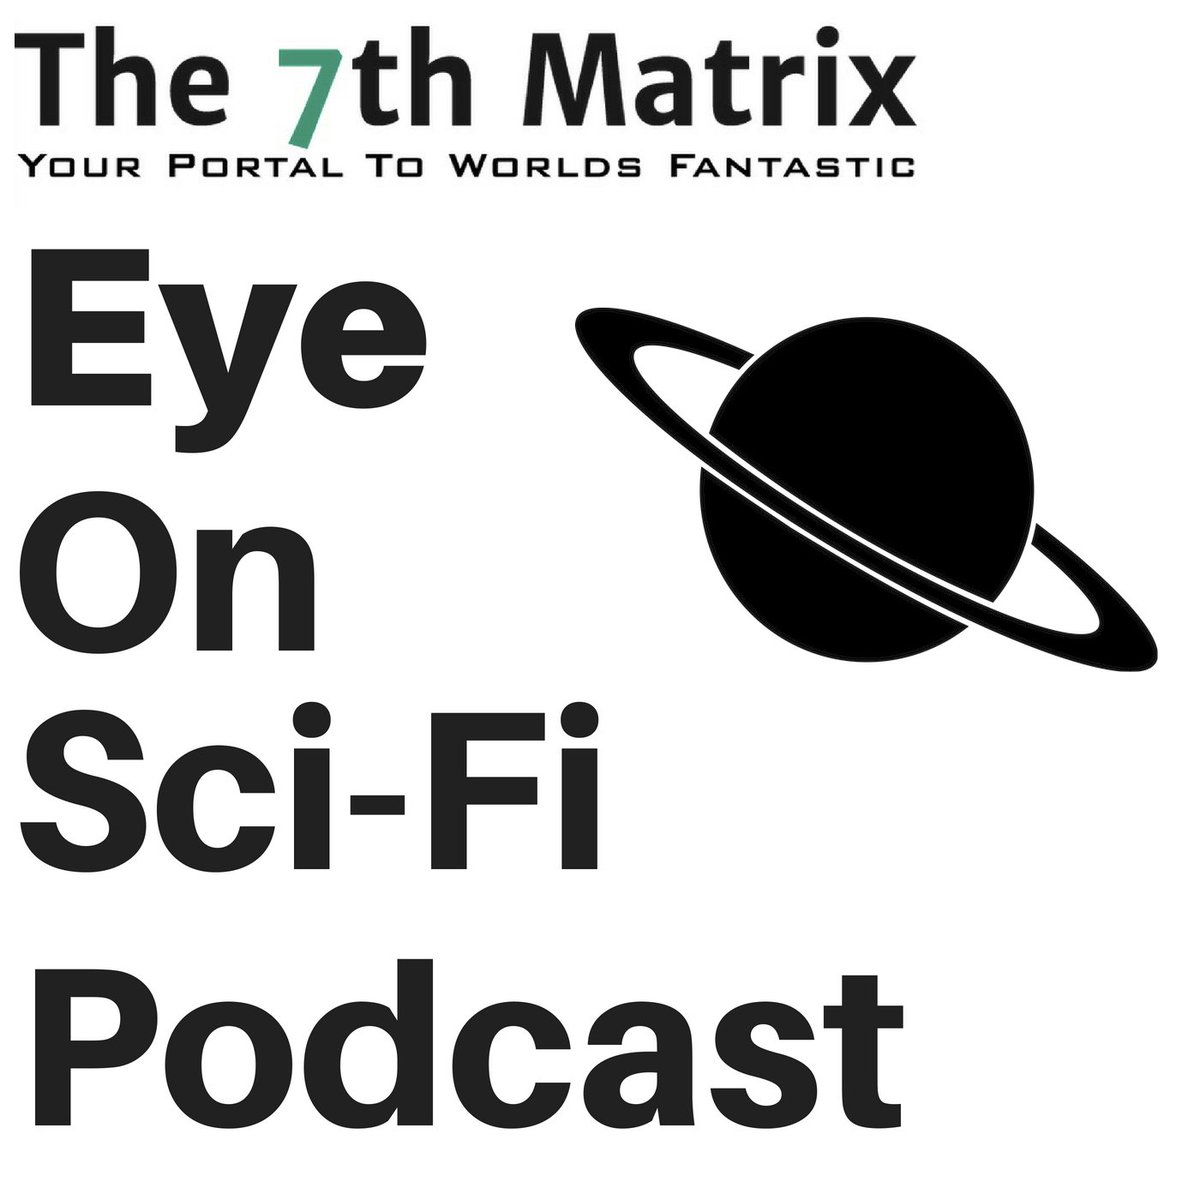 Check out our latest podcast episode featuring 'EXILE' the mysterious #sciencefiction short by #MarkFreiburger about a father + daughter's encounter with a strange intruder. Listen here: https://t.co/KRWvPRZfab #EOSFPodcast https://t.co/xQhmkP4YsH